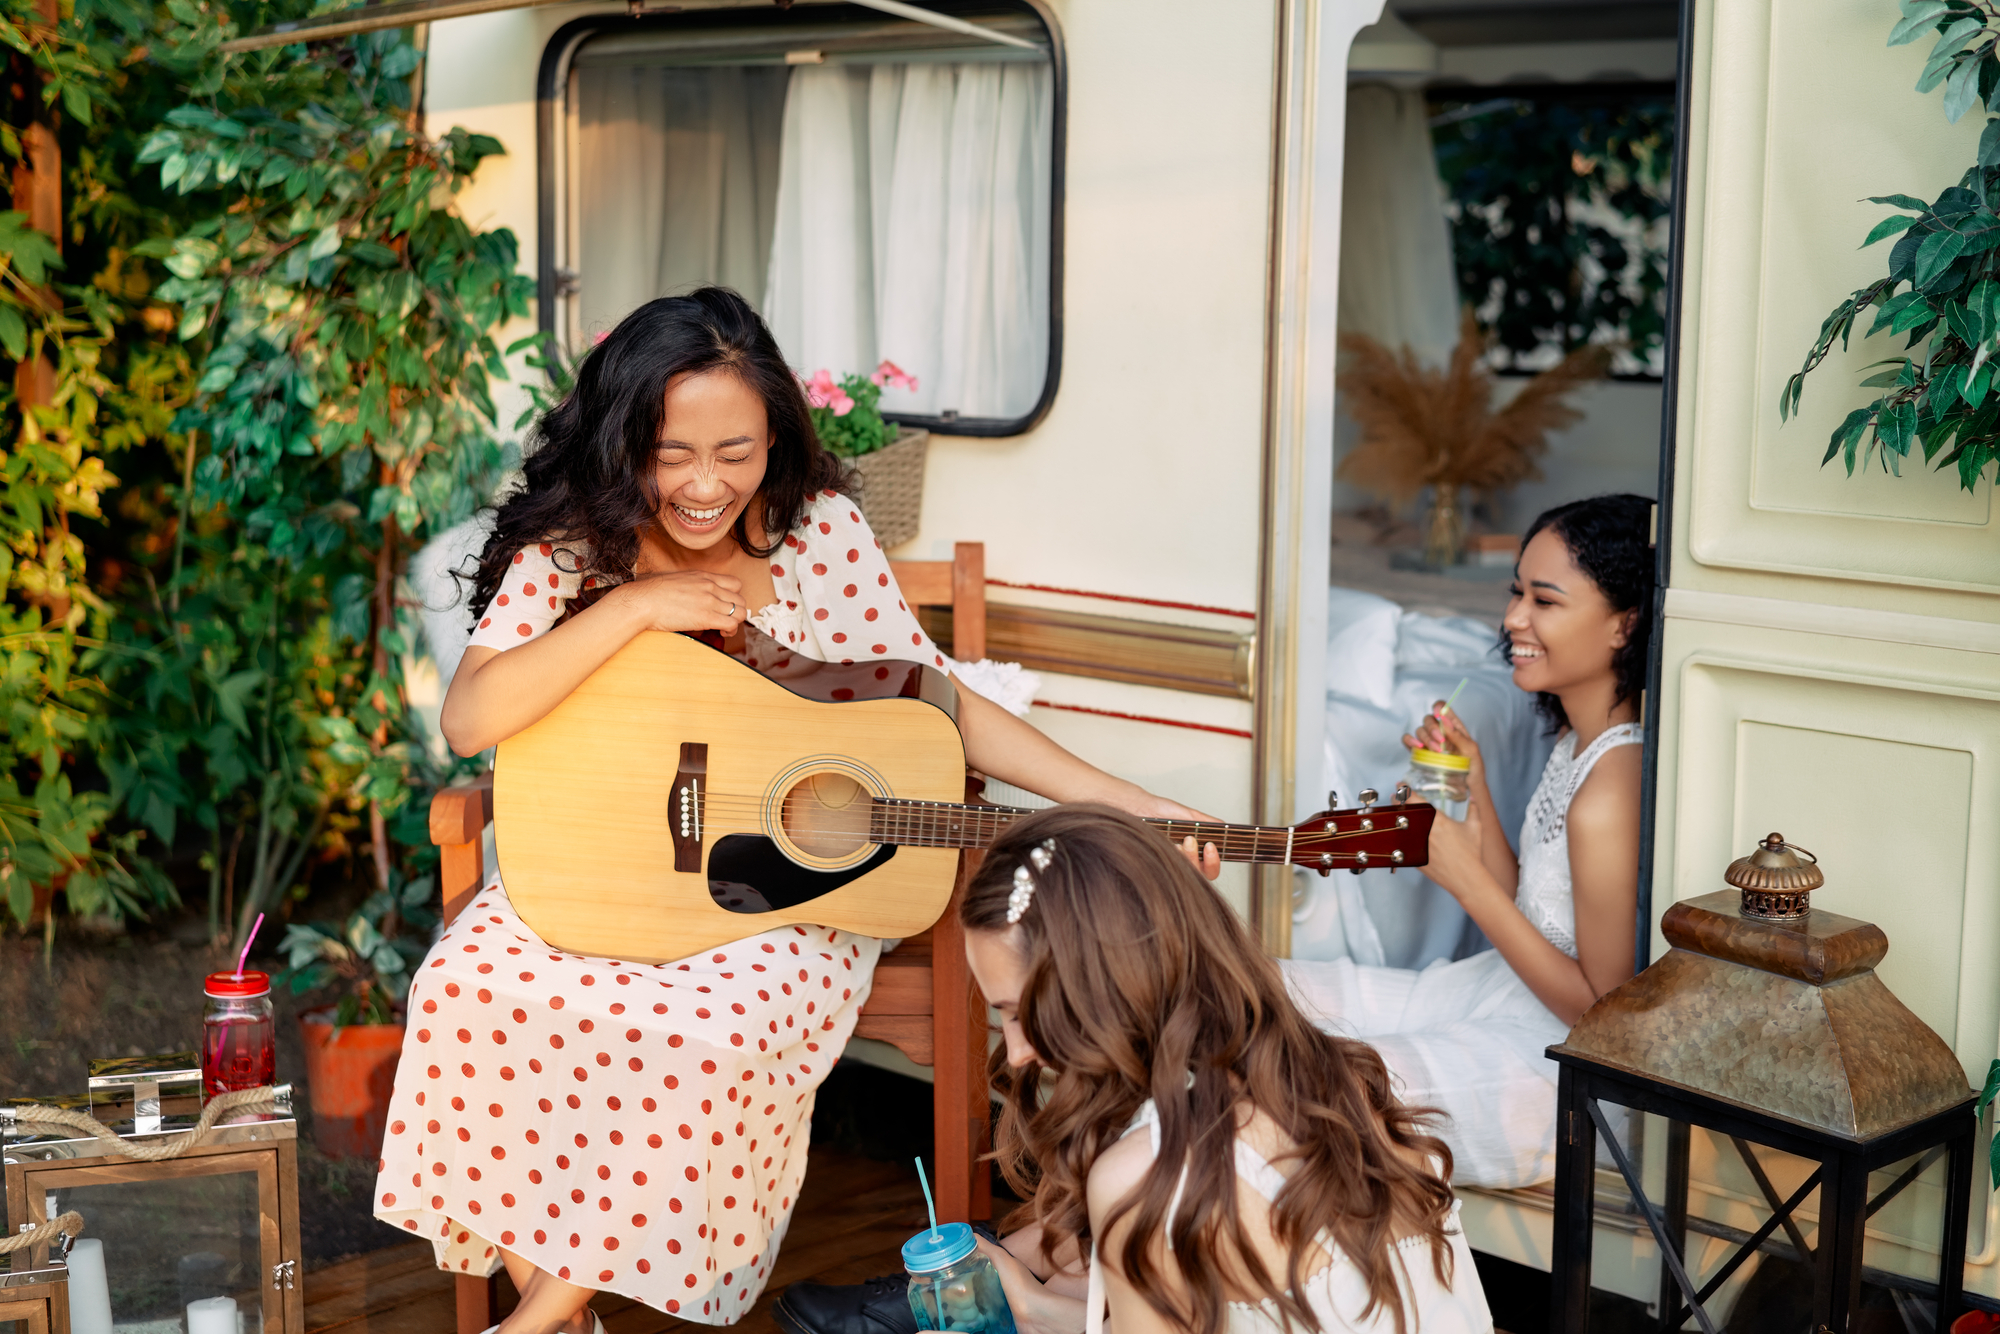 Laughing happy women with guitar